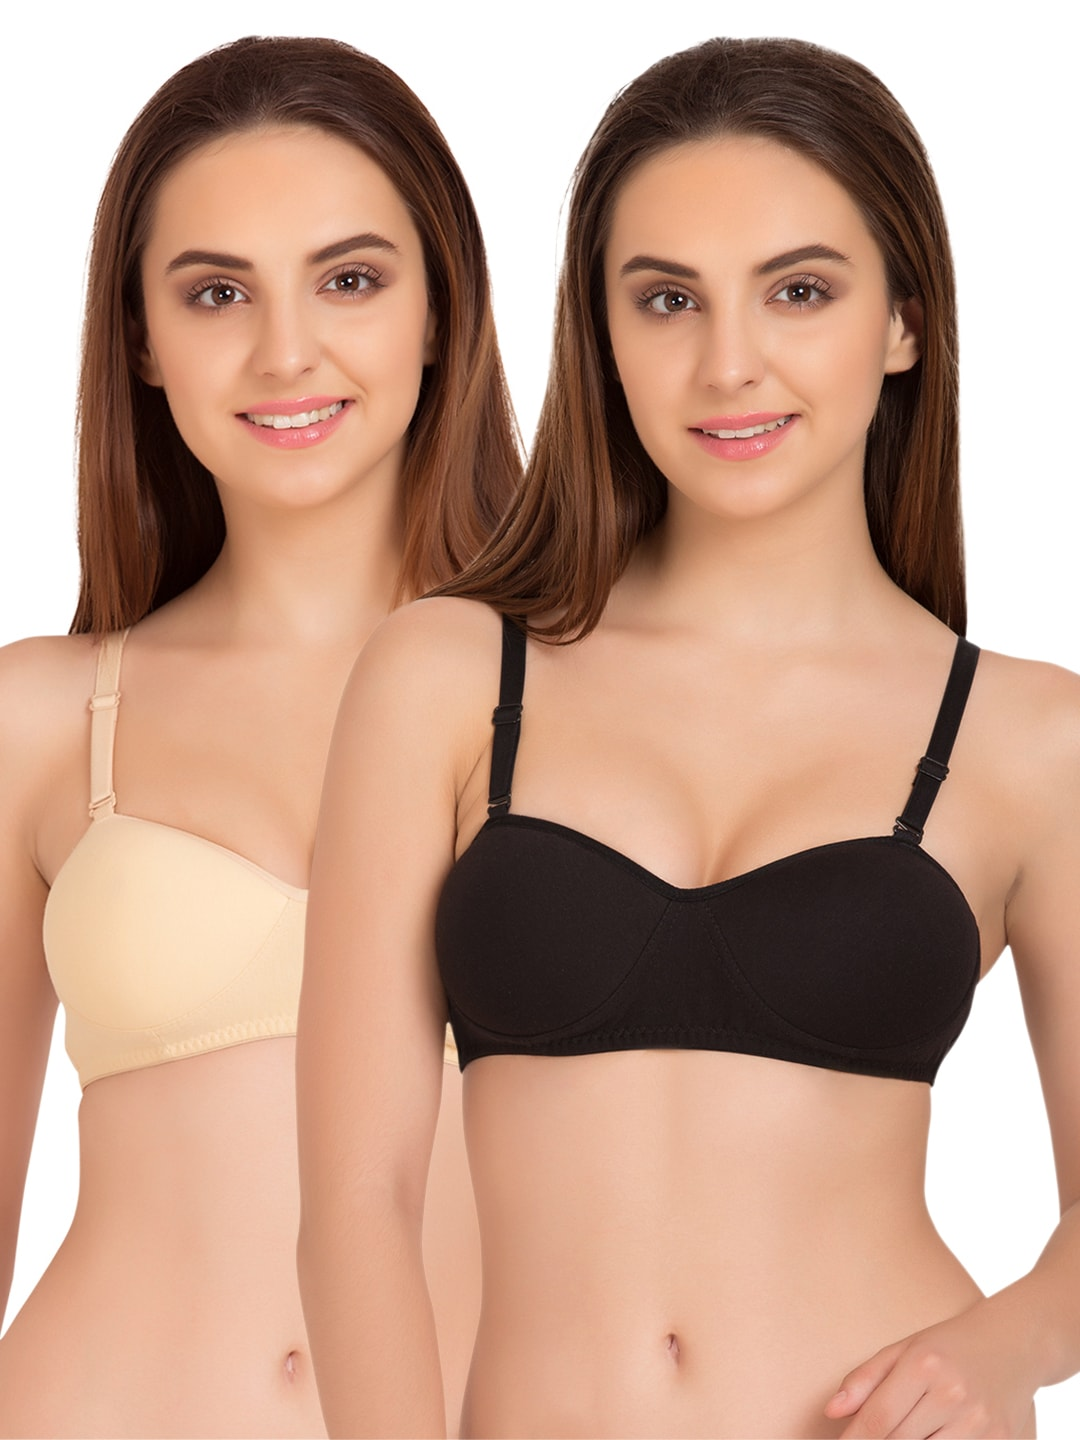 Tweens Pack of 2 Padded T-shirt Bras TW91201SK-2PC-BL image